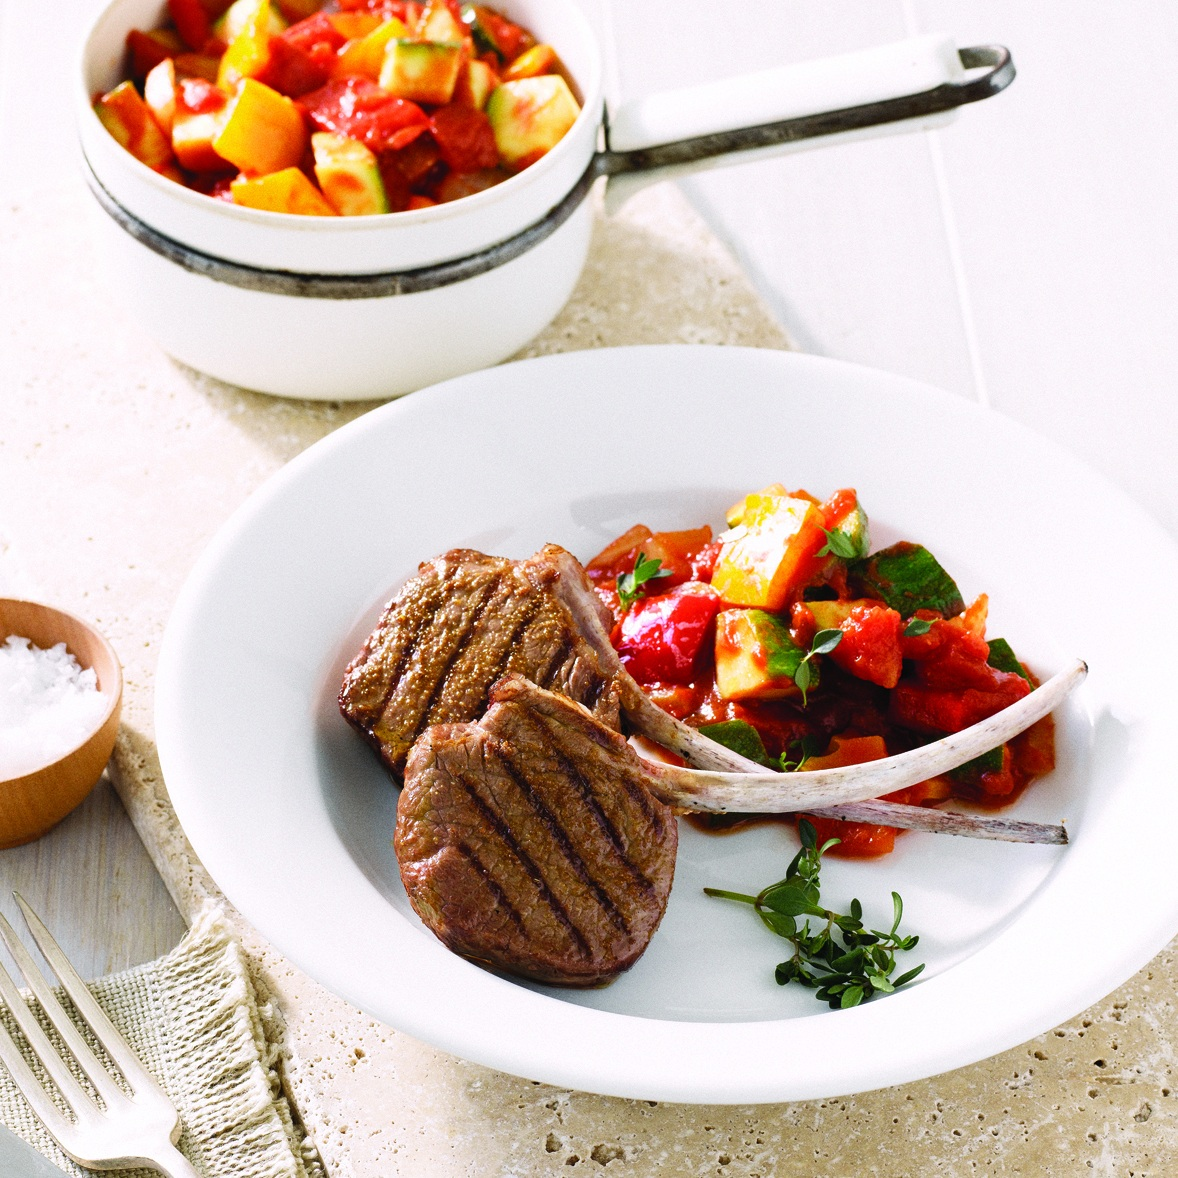 Char+grilled+Spiced+Lamb+Cytlets+with+Ratatouille.jpg